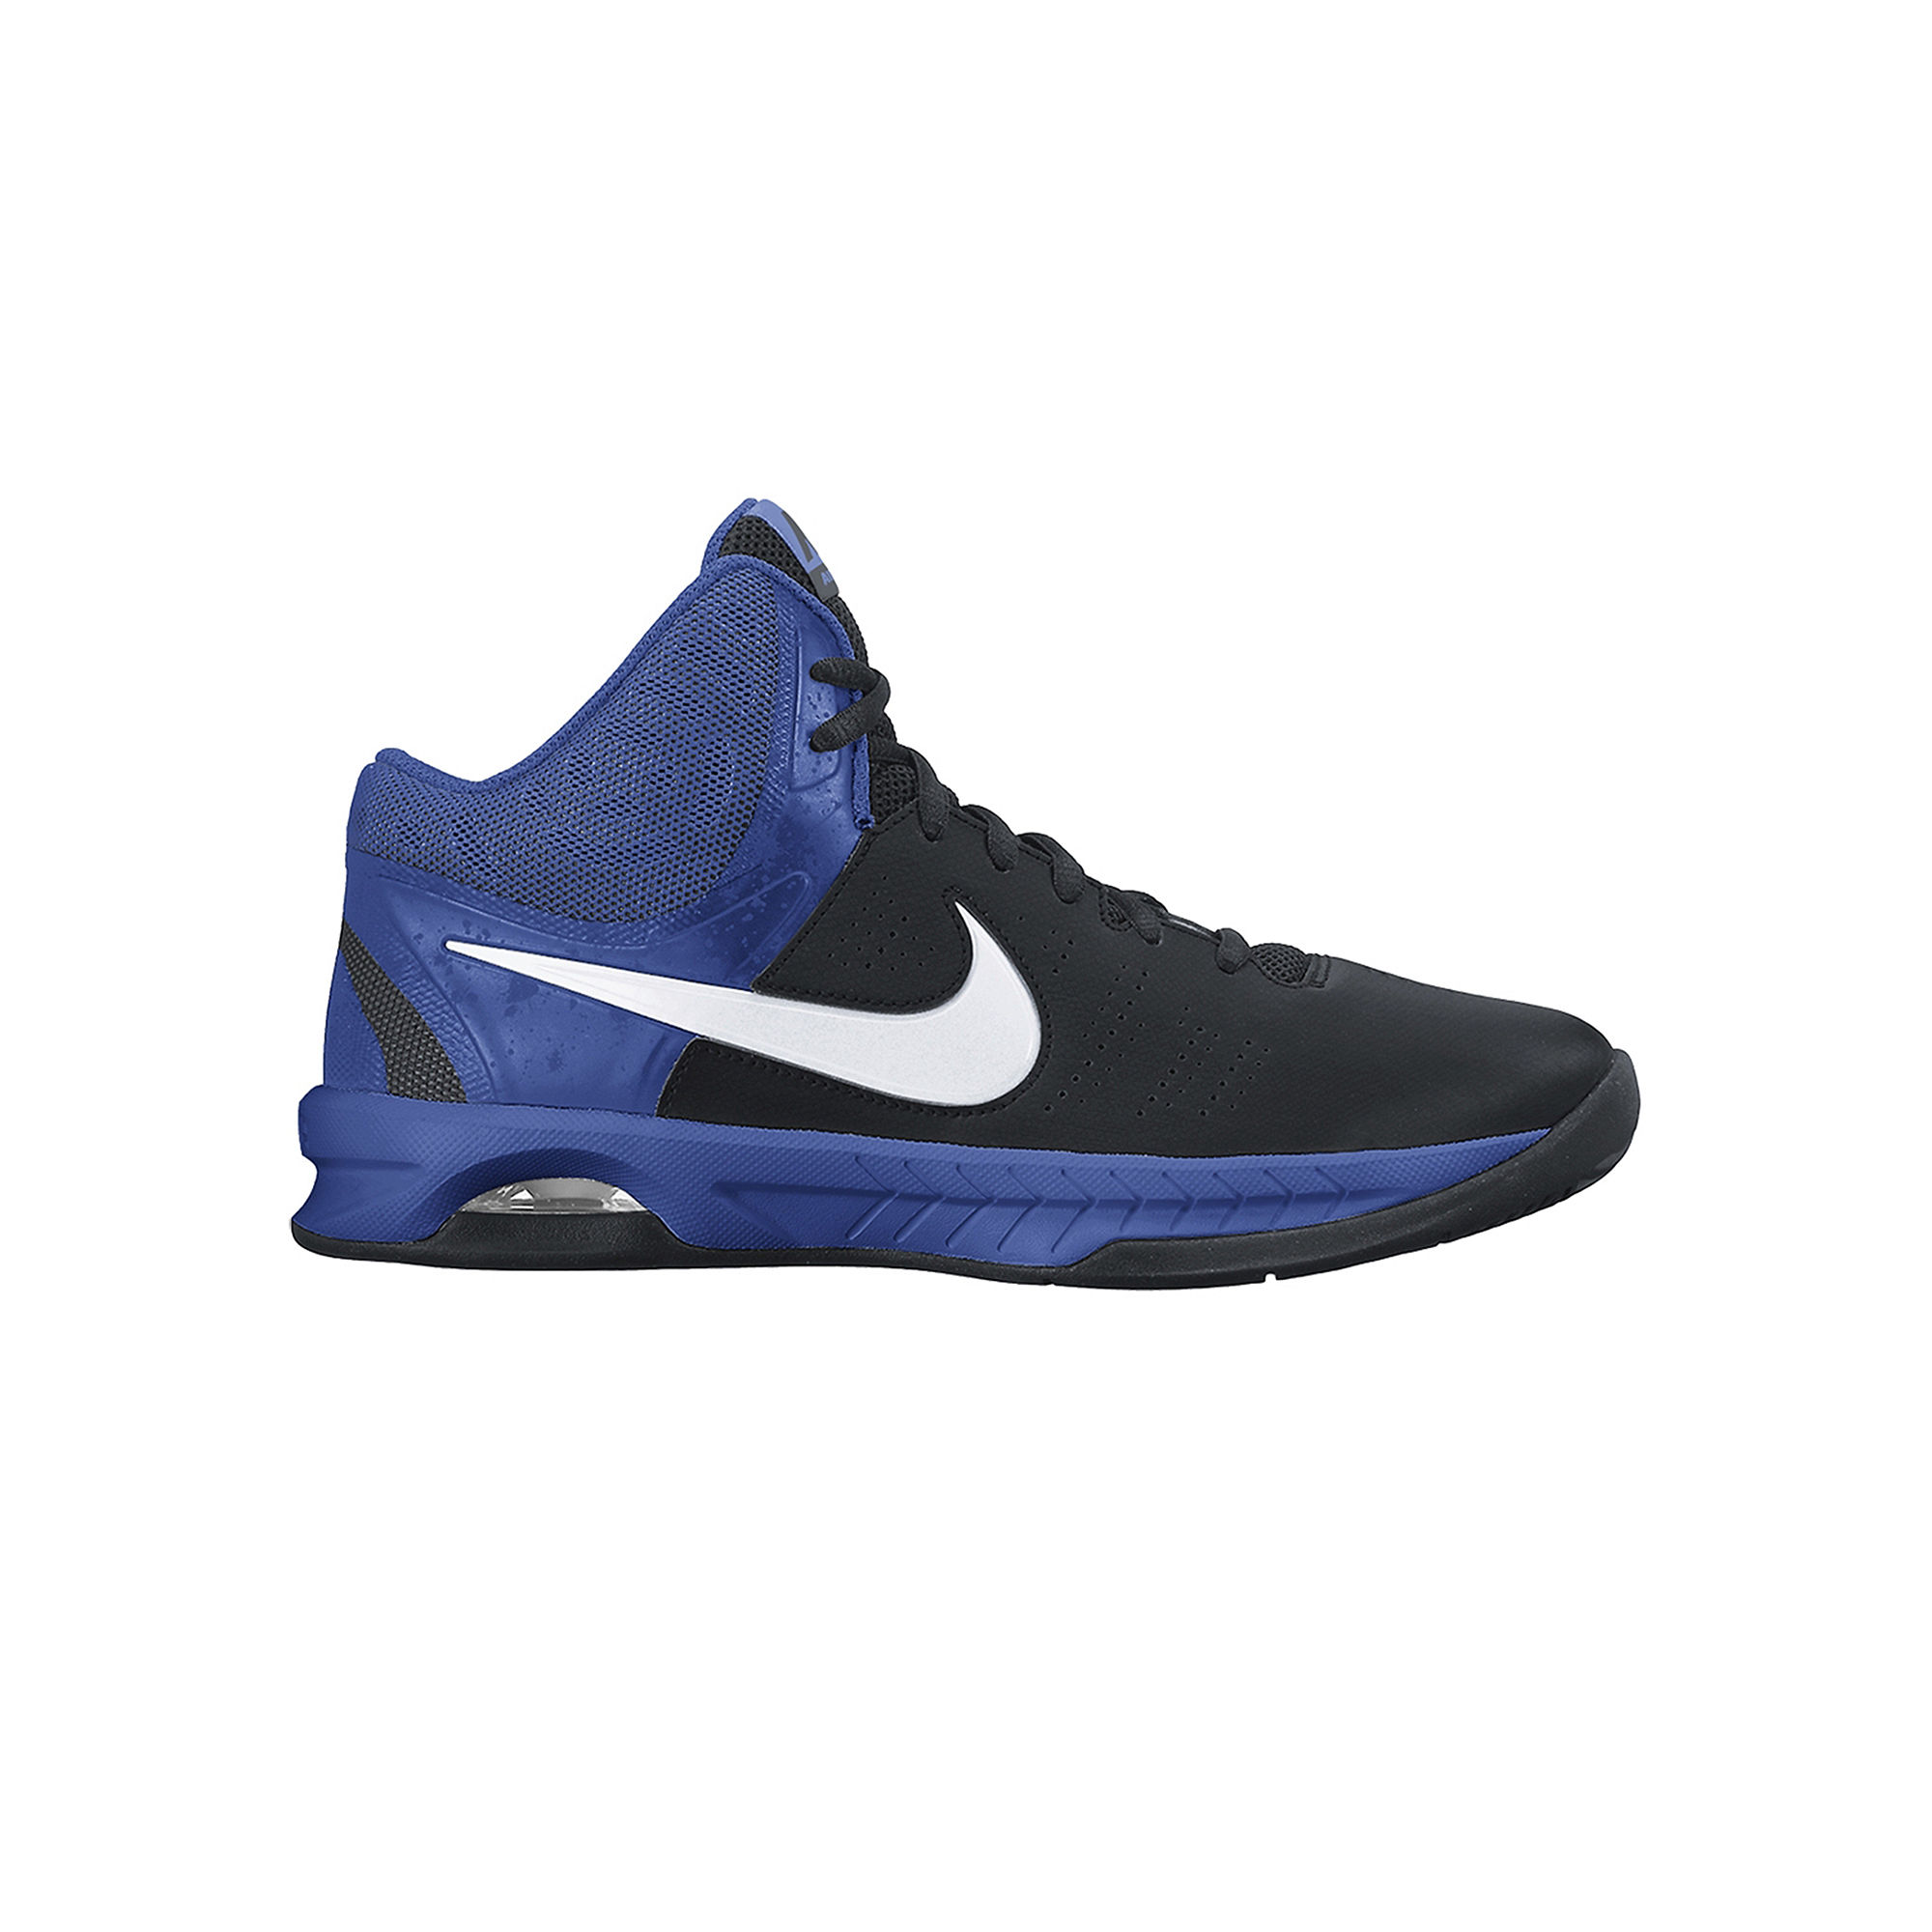 f1eb36173440 ... UPC 886550519359 product image for Nike Air Visi Pro VI Mens Basketball  Shoes